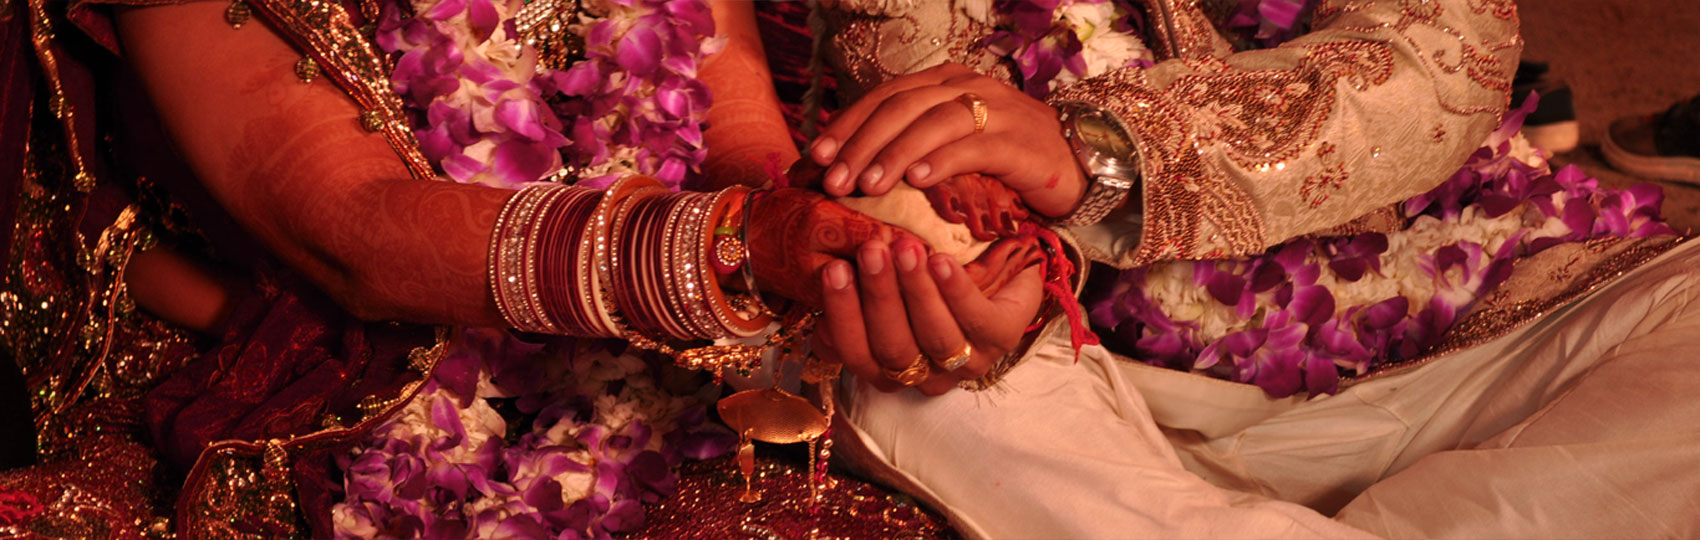 Manglik Matrimony Sites Combine Benefits of Love and Arrange Marriage